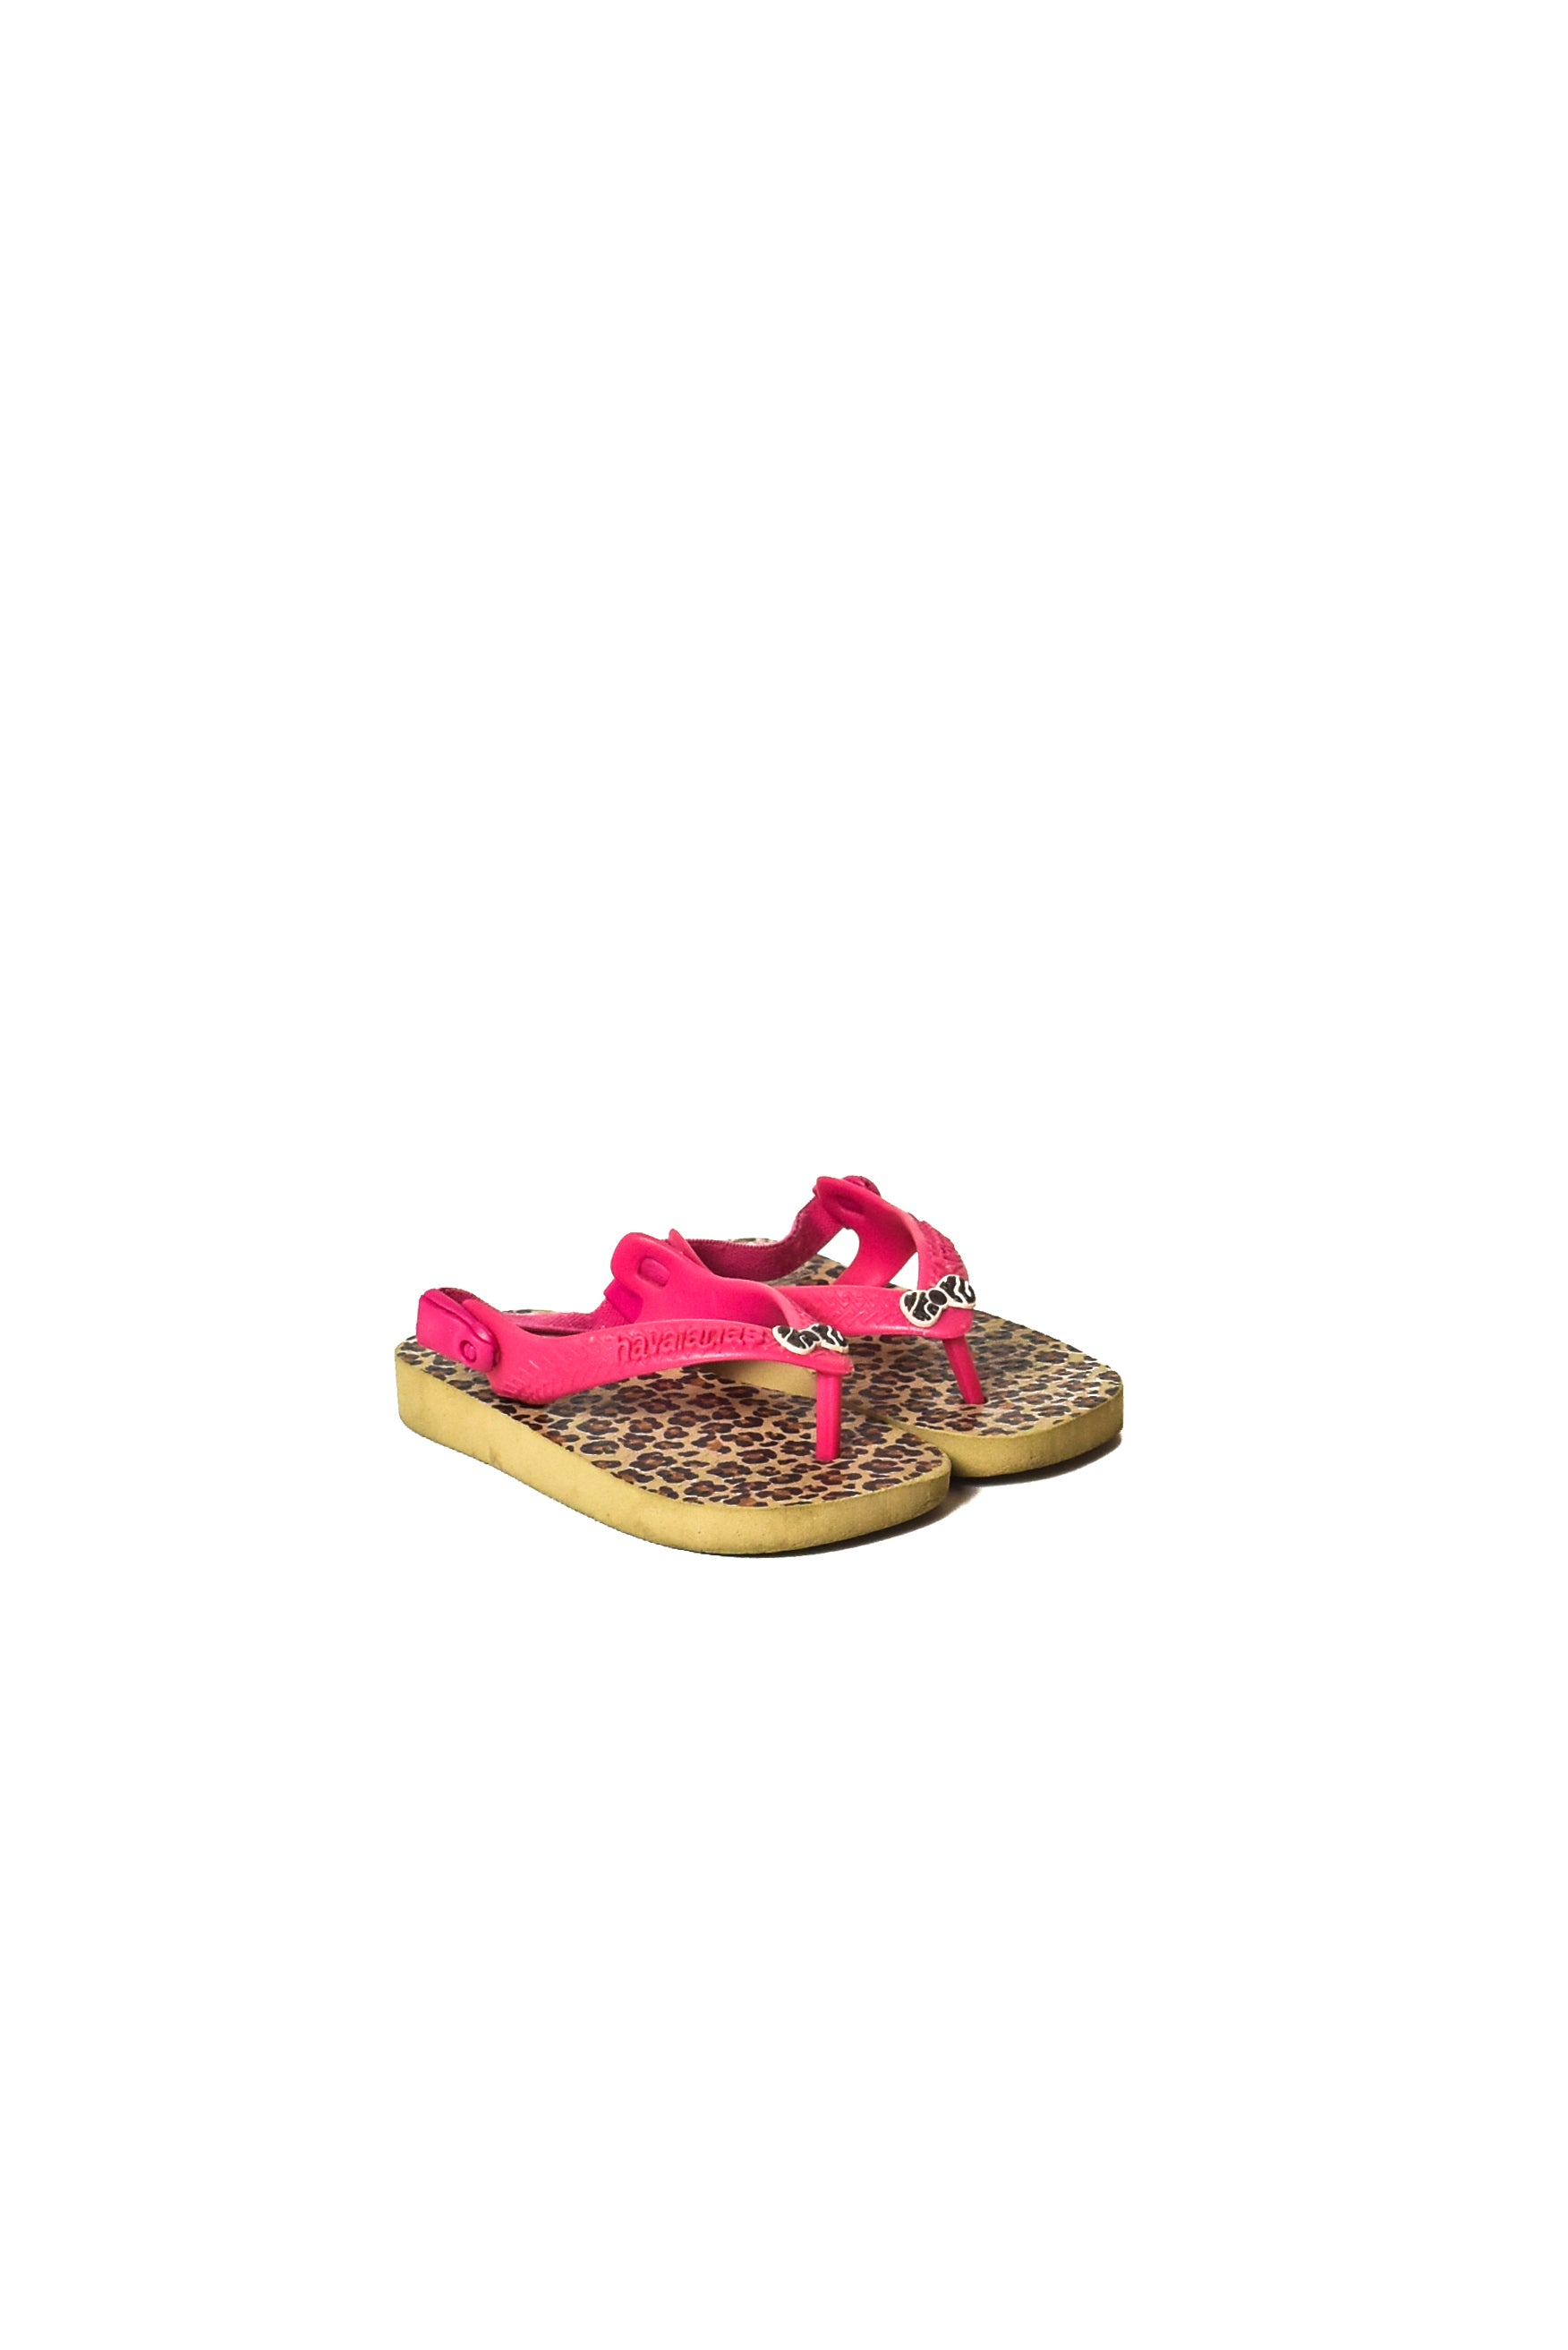 10012748 Havaianas Kids ~ Flips Flops 3T (EU 24) at Retykle